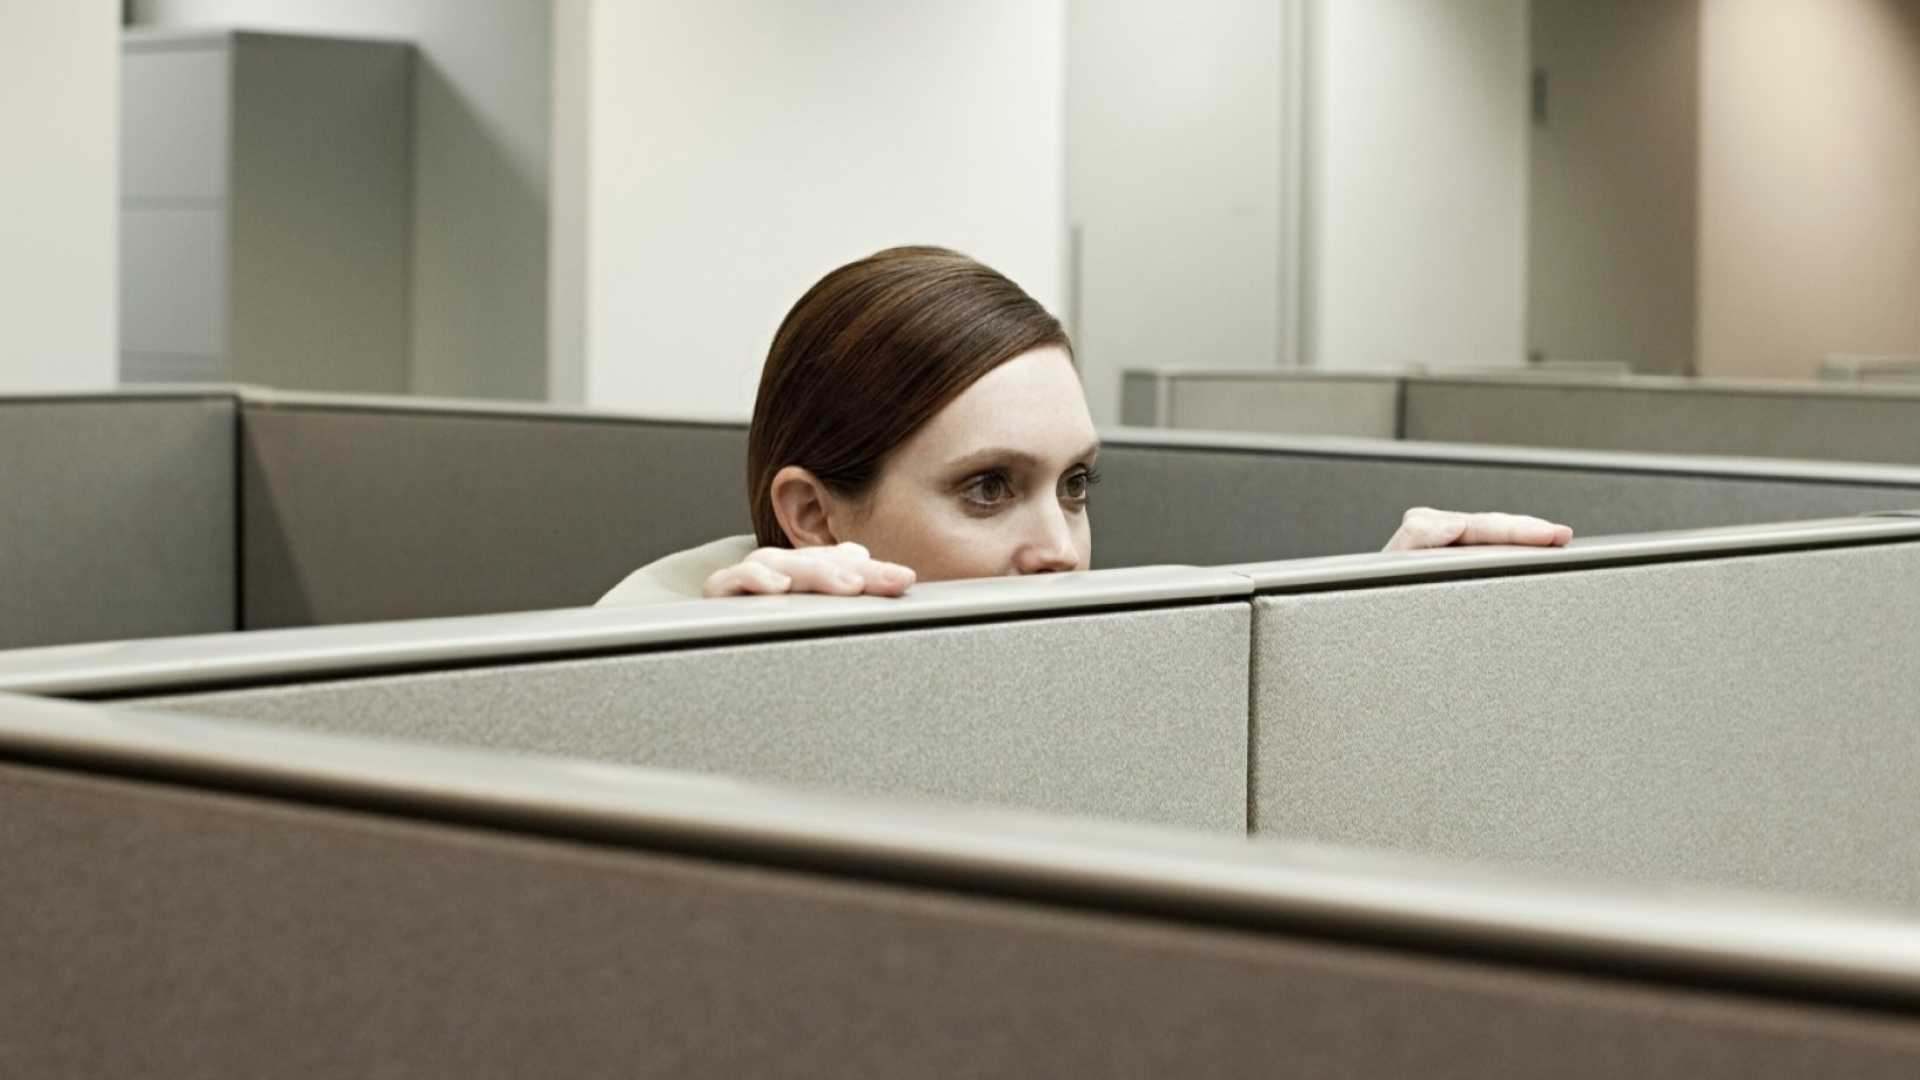 17 Incredibly Scary Things People Hear at Work